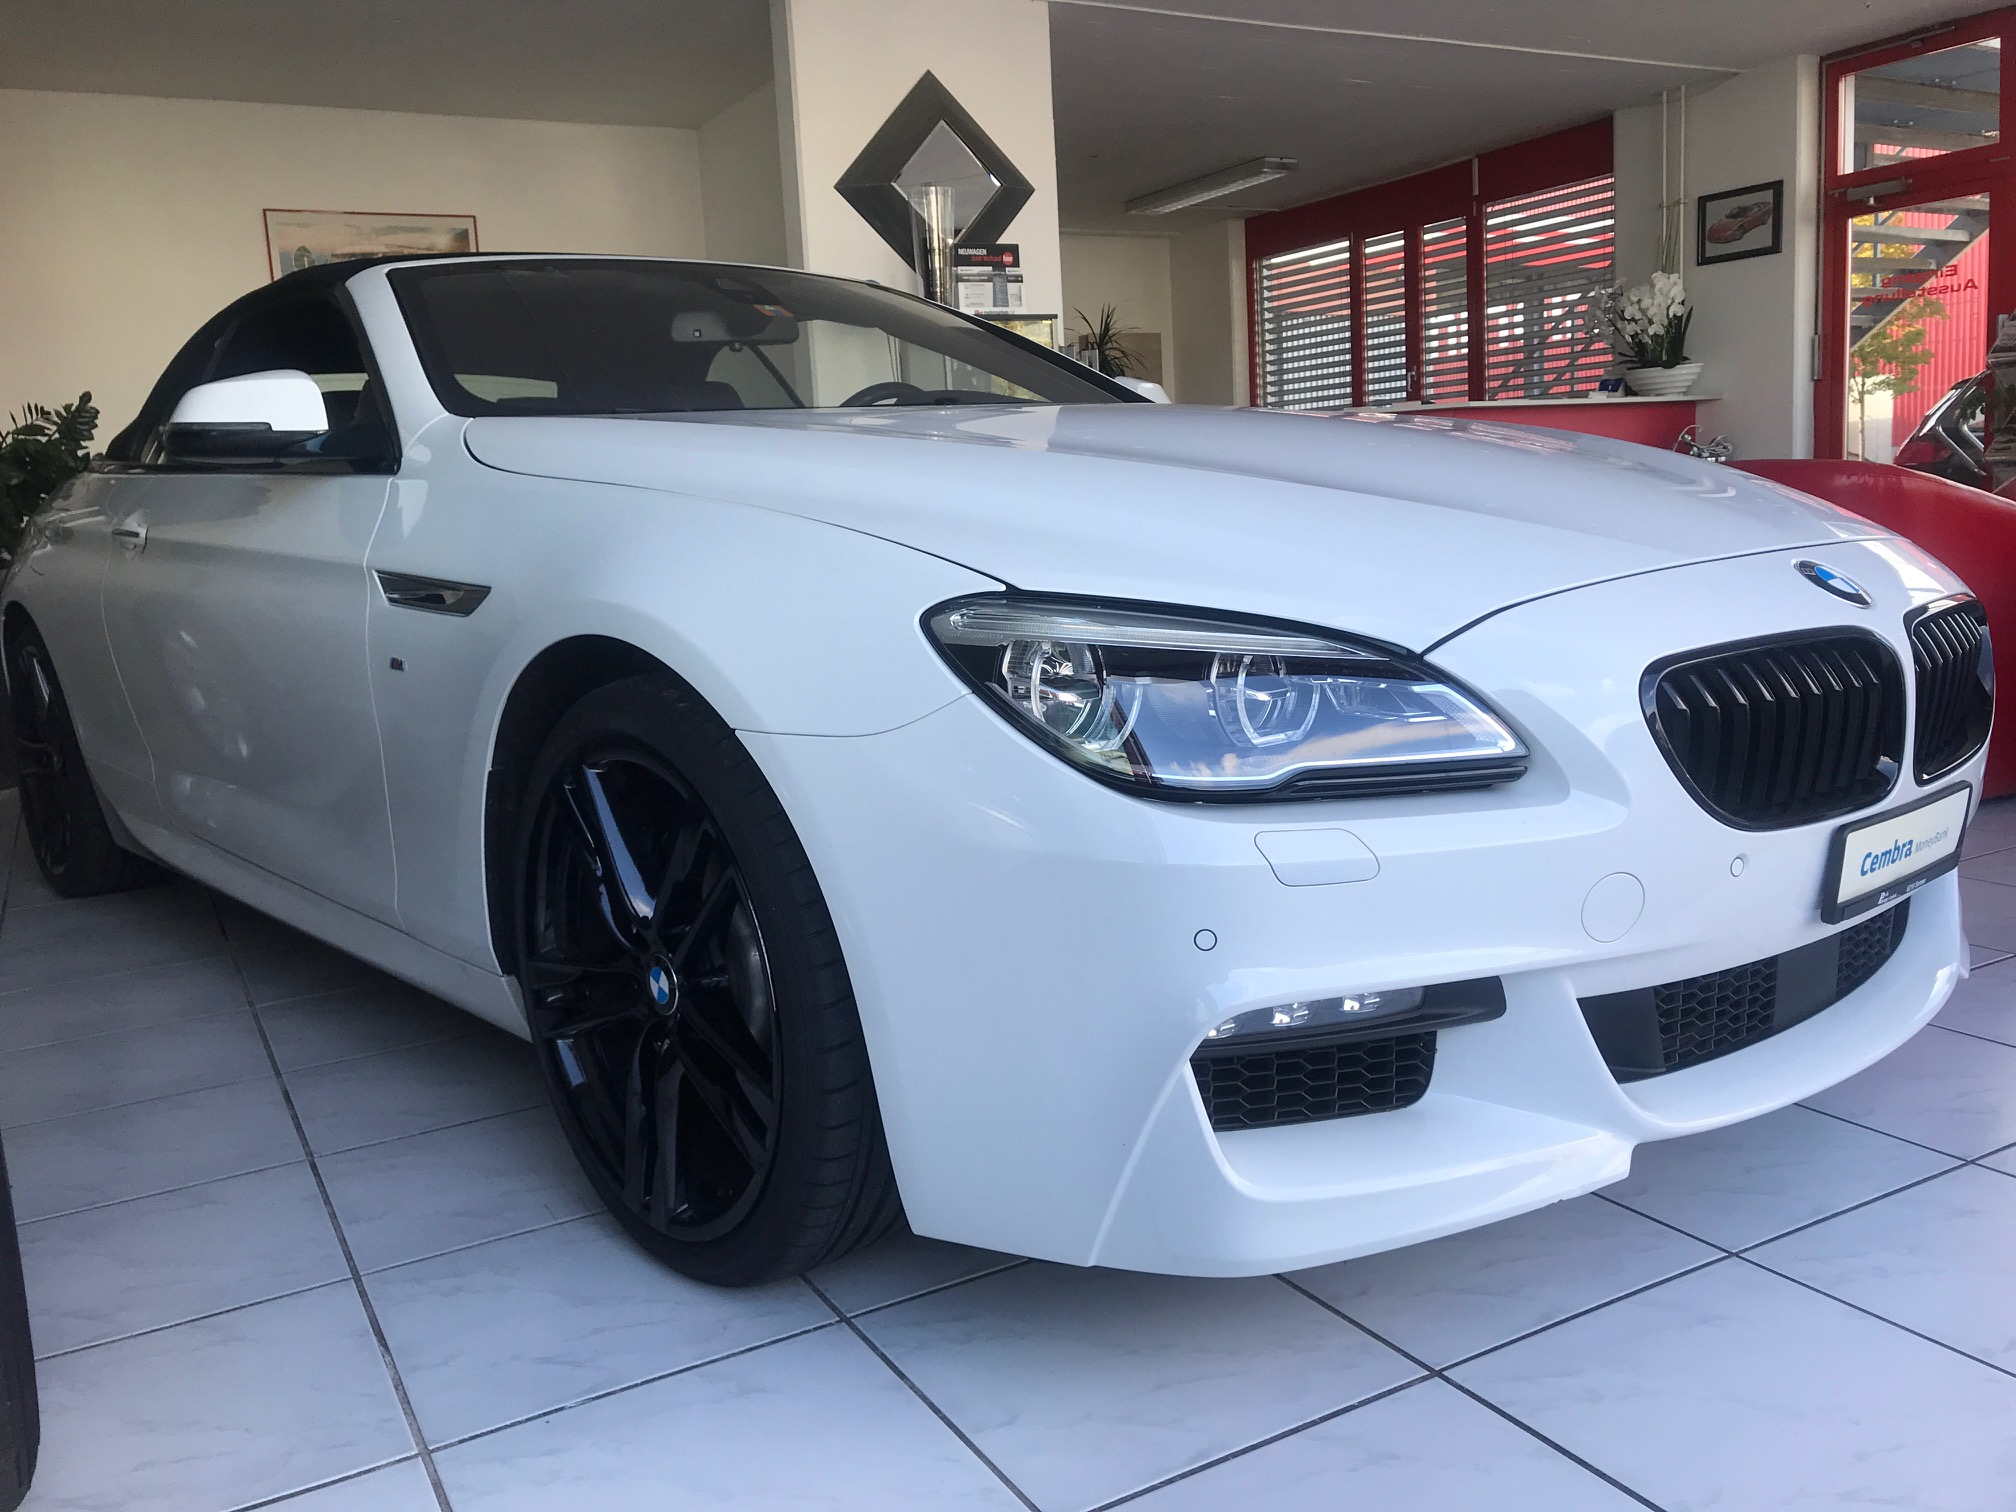 BMW 640d xDrive  (Cabriolet)